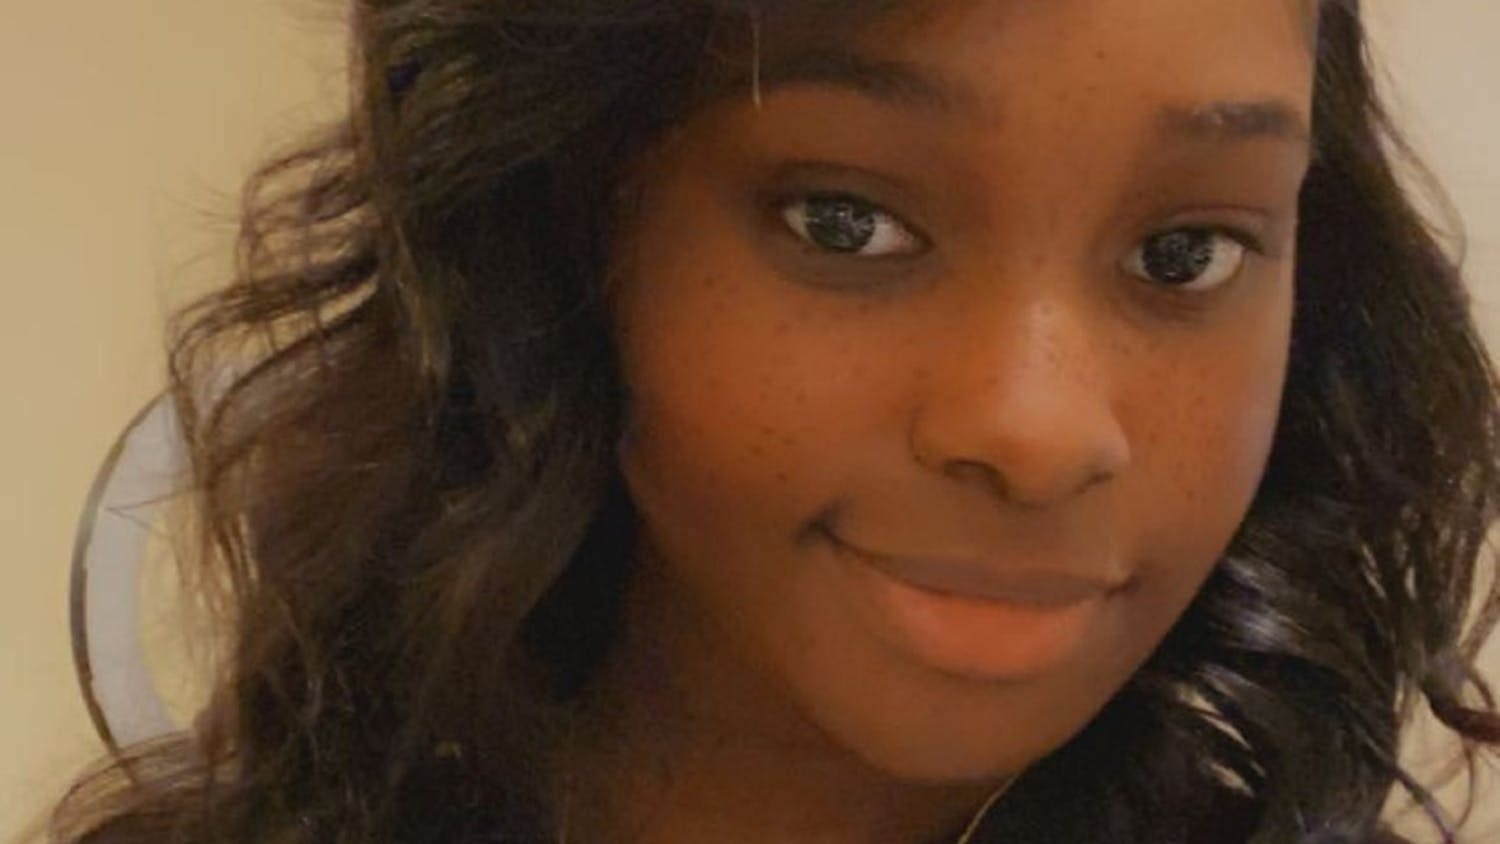 The search for 19-year-old Buffalo State student Saniyya Dennis continues more than one week after her disappearance.